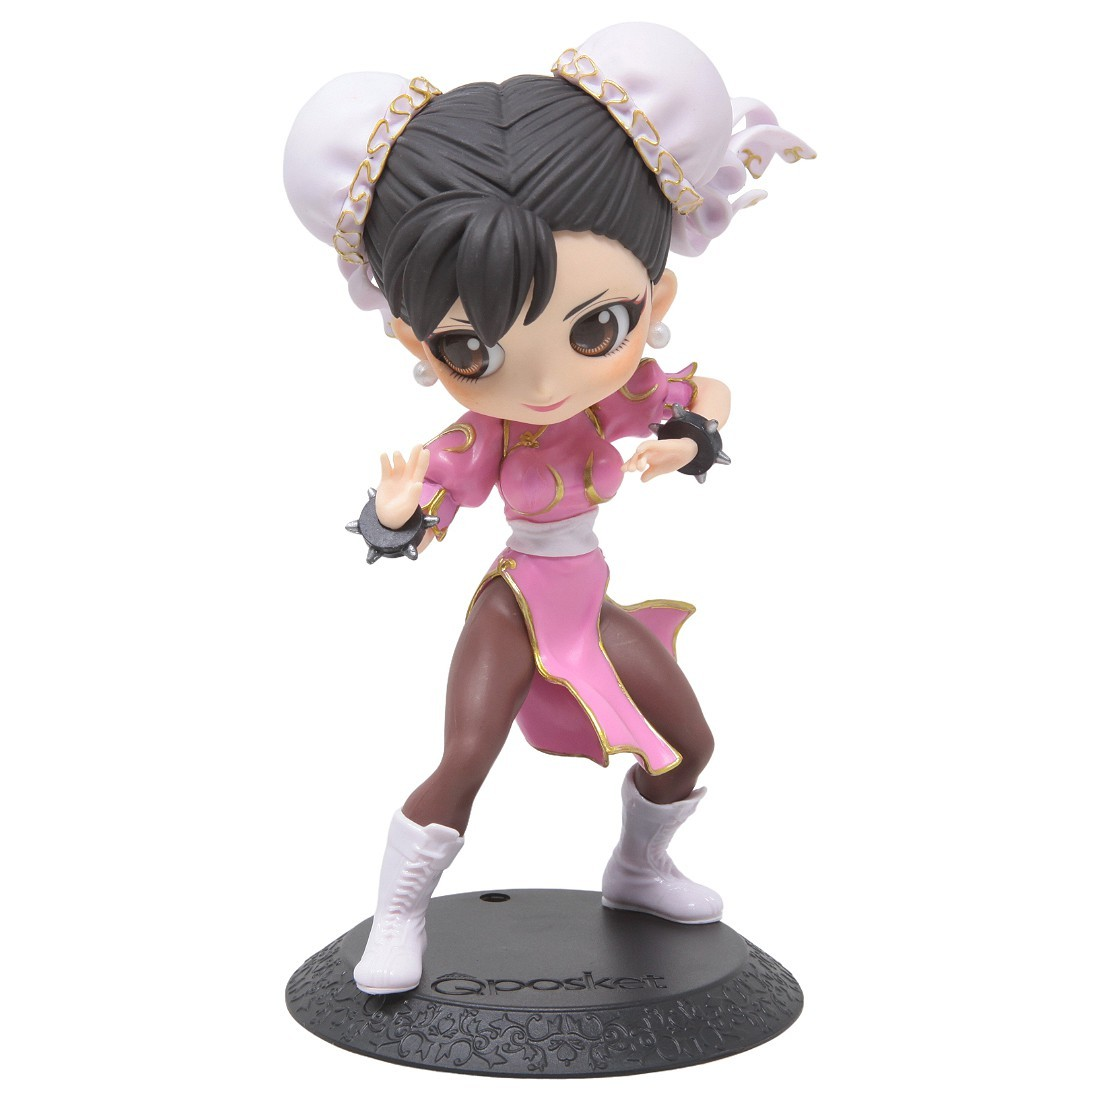 Banpresto Q Posket Street Fighter Series Chun Li Figure Ver B Blue